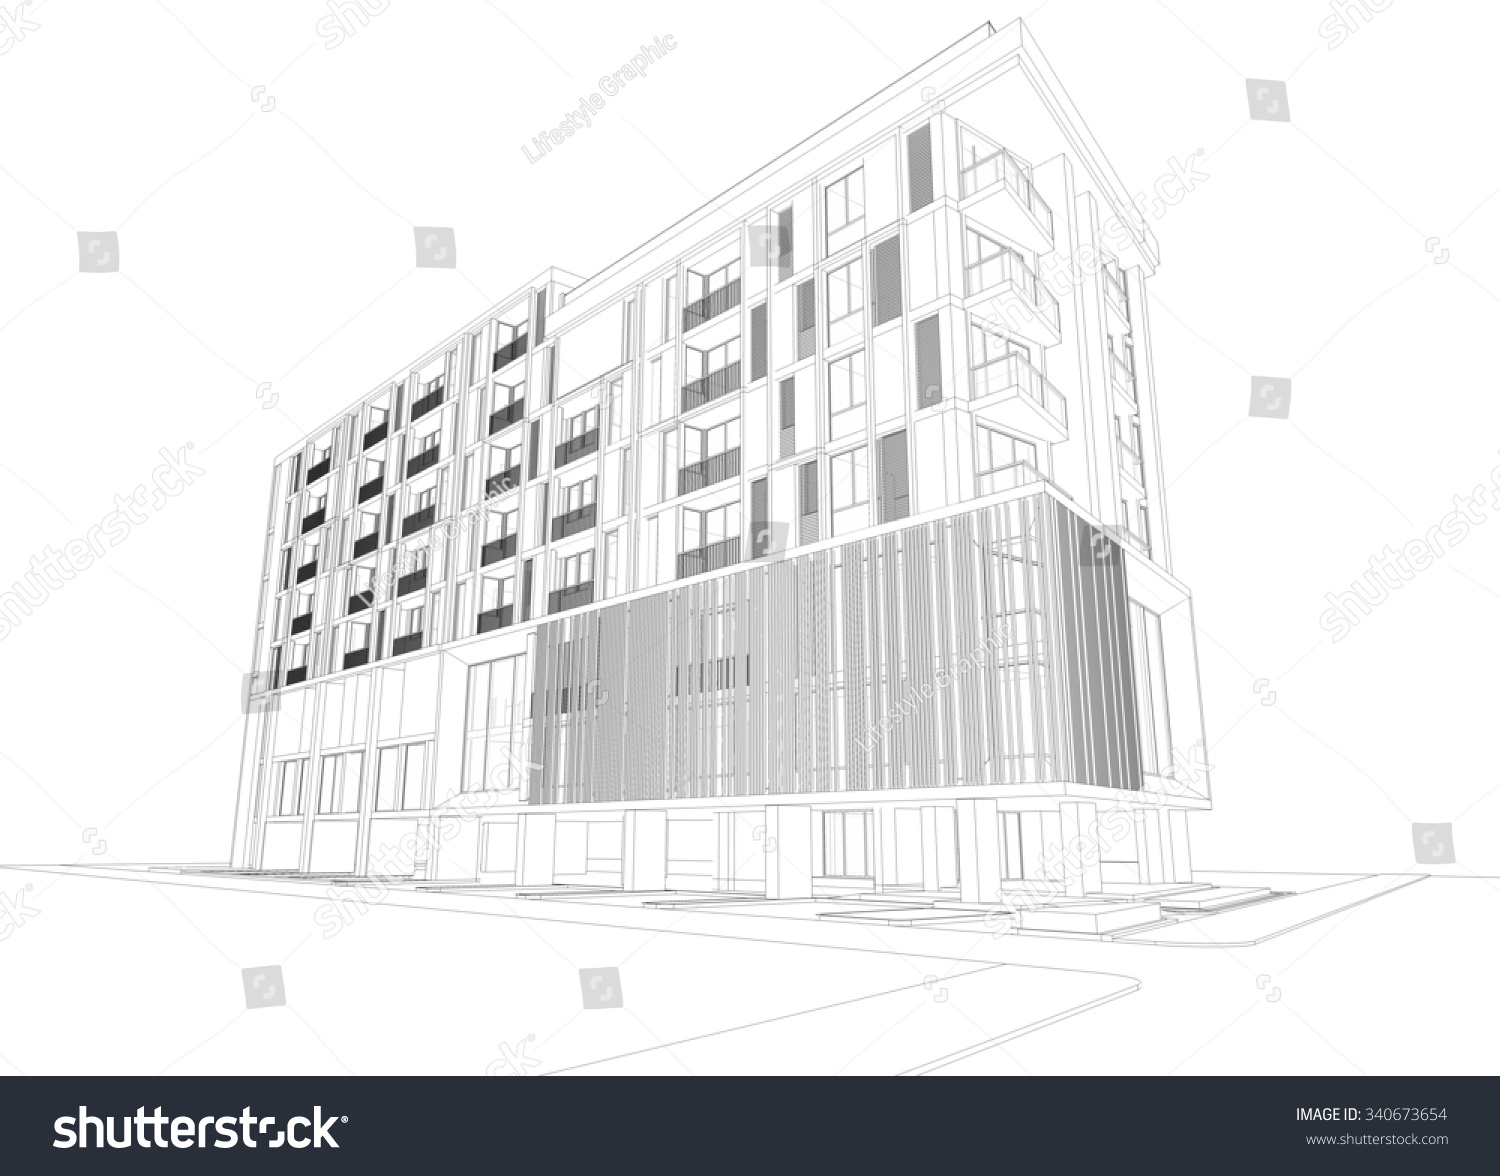 Bsl310 Wiring Diagram 21 Images Diagrams Bodine Motor Schematic Stock Photo Abstract D Rendering Of Building Wireframe Design Architecture 340673654 Awesome